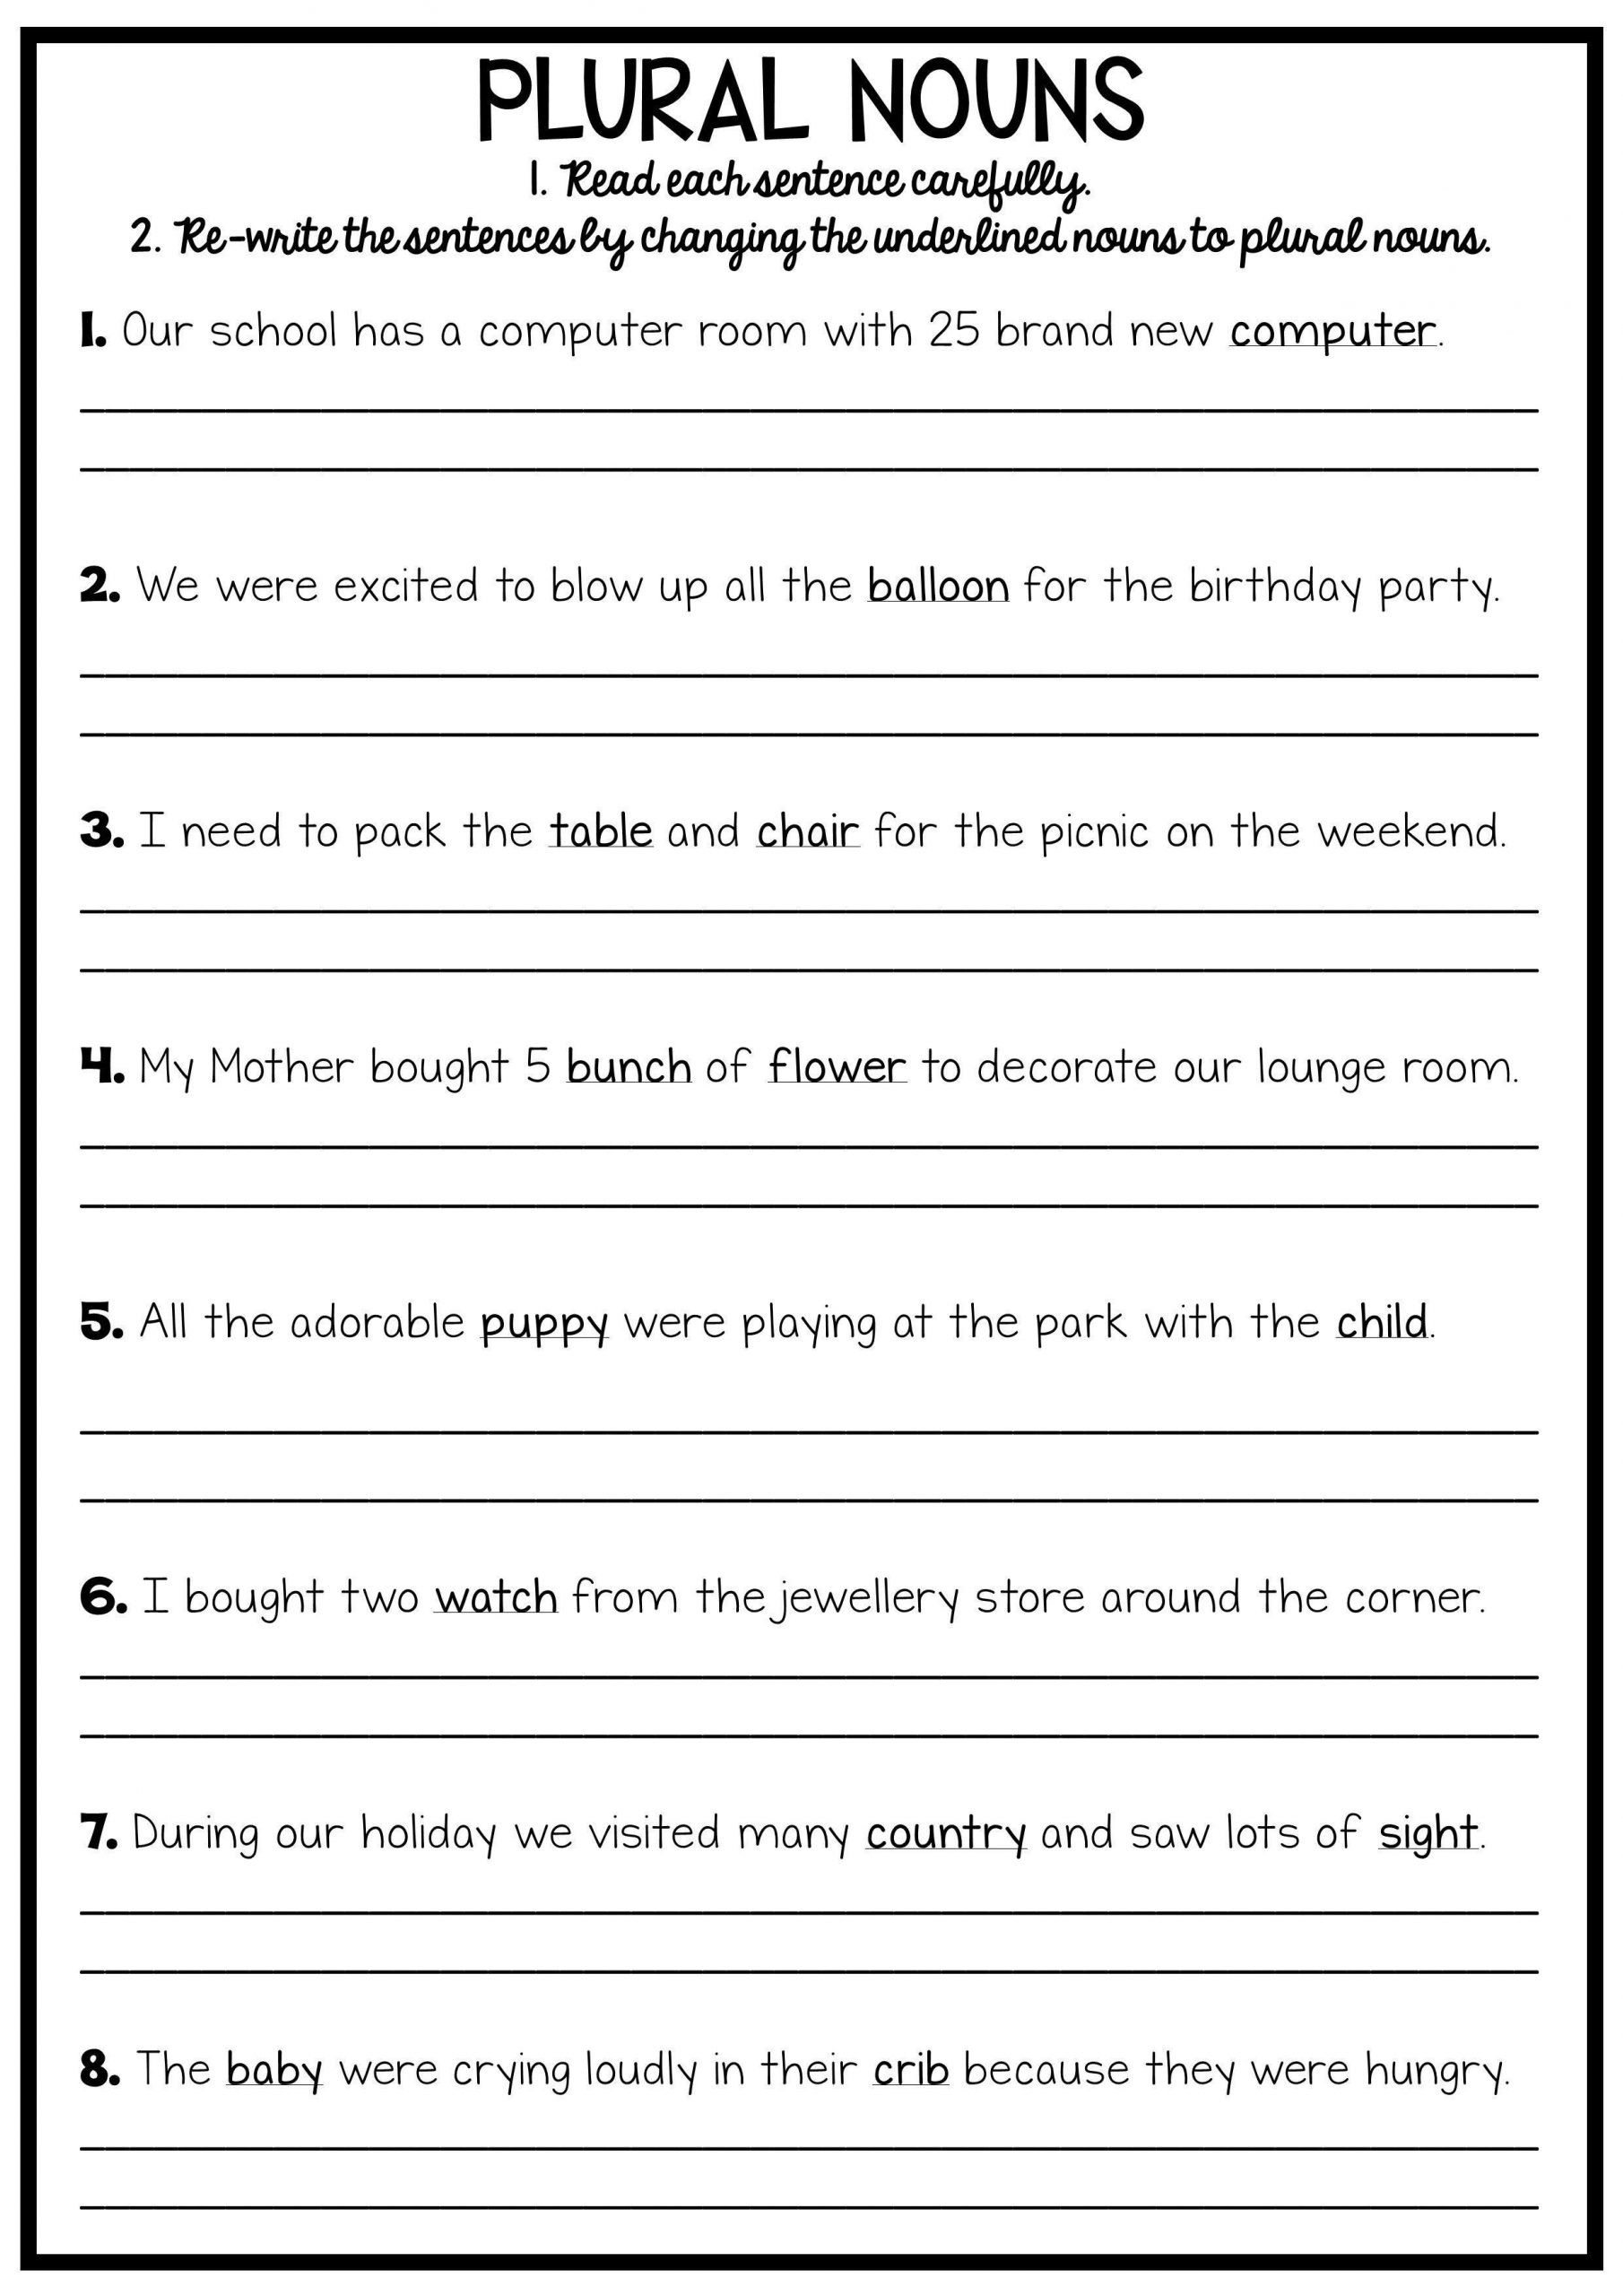 Complete Sentence Worksheets 3rd Grade Legal Summarizing Worksheets 3rd Grade